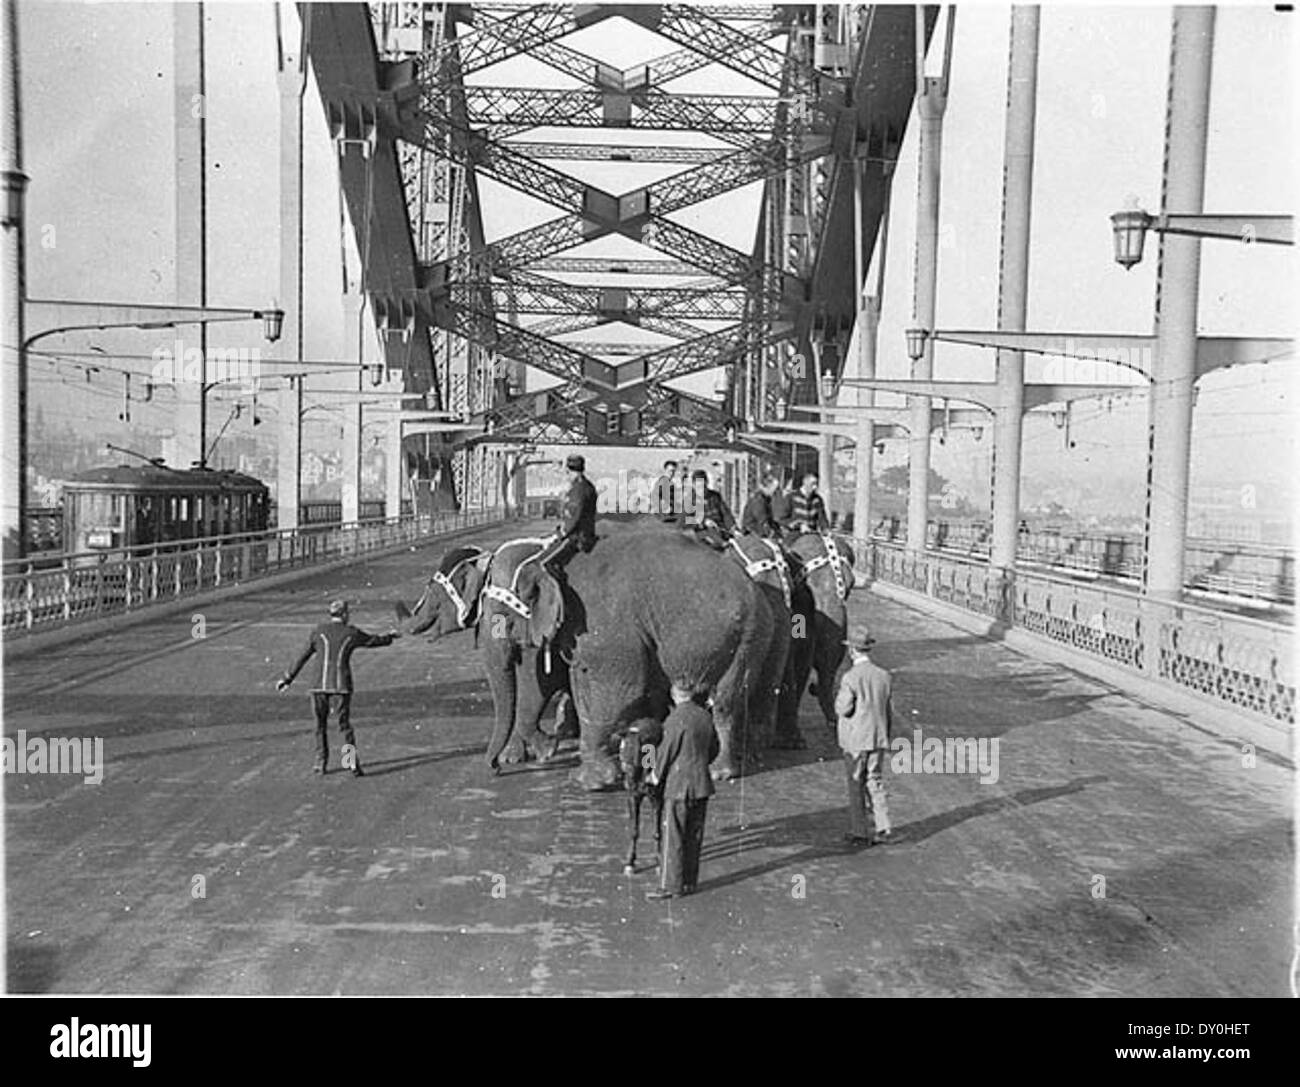 Six Wirths' Circus elephants with their attendants and a Shetland pony crossing the Sydney Harbour Bridge for publicity, 3 April 1932 / Sam Hood - Stock Image